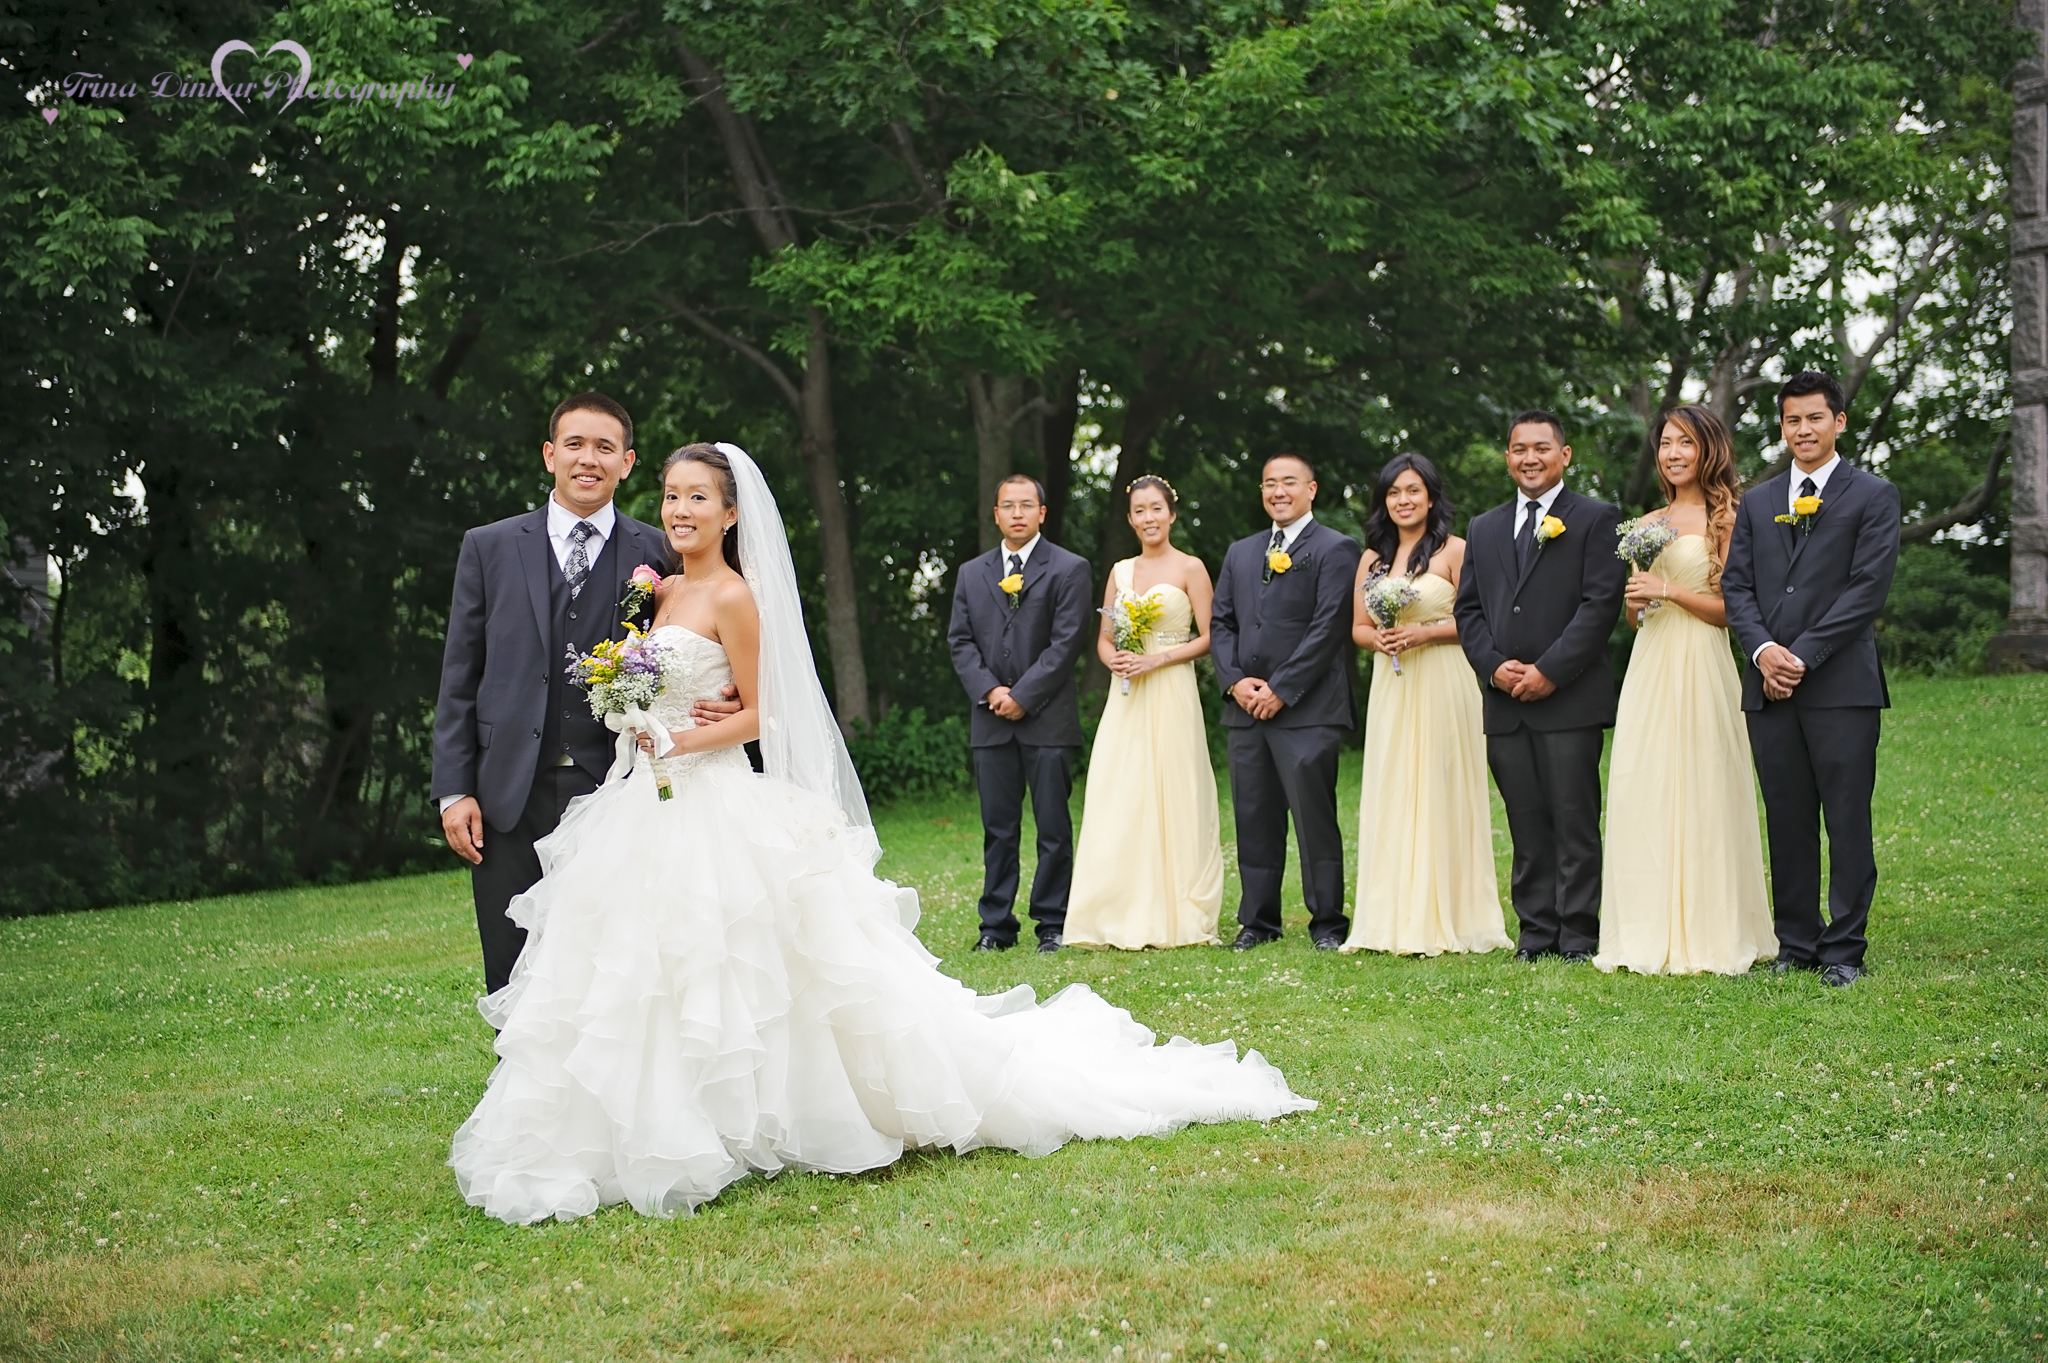 The bride and groom with their wedding party just after their ceremony near Portland, Maine